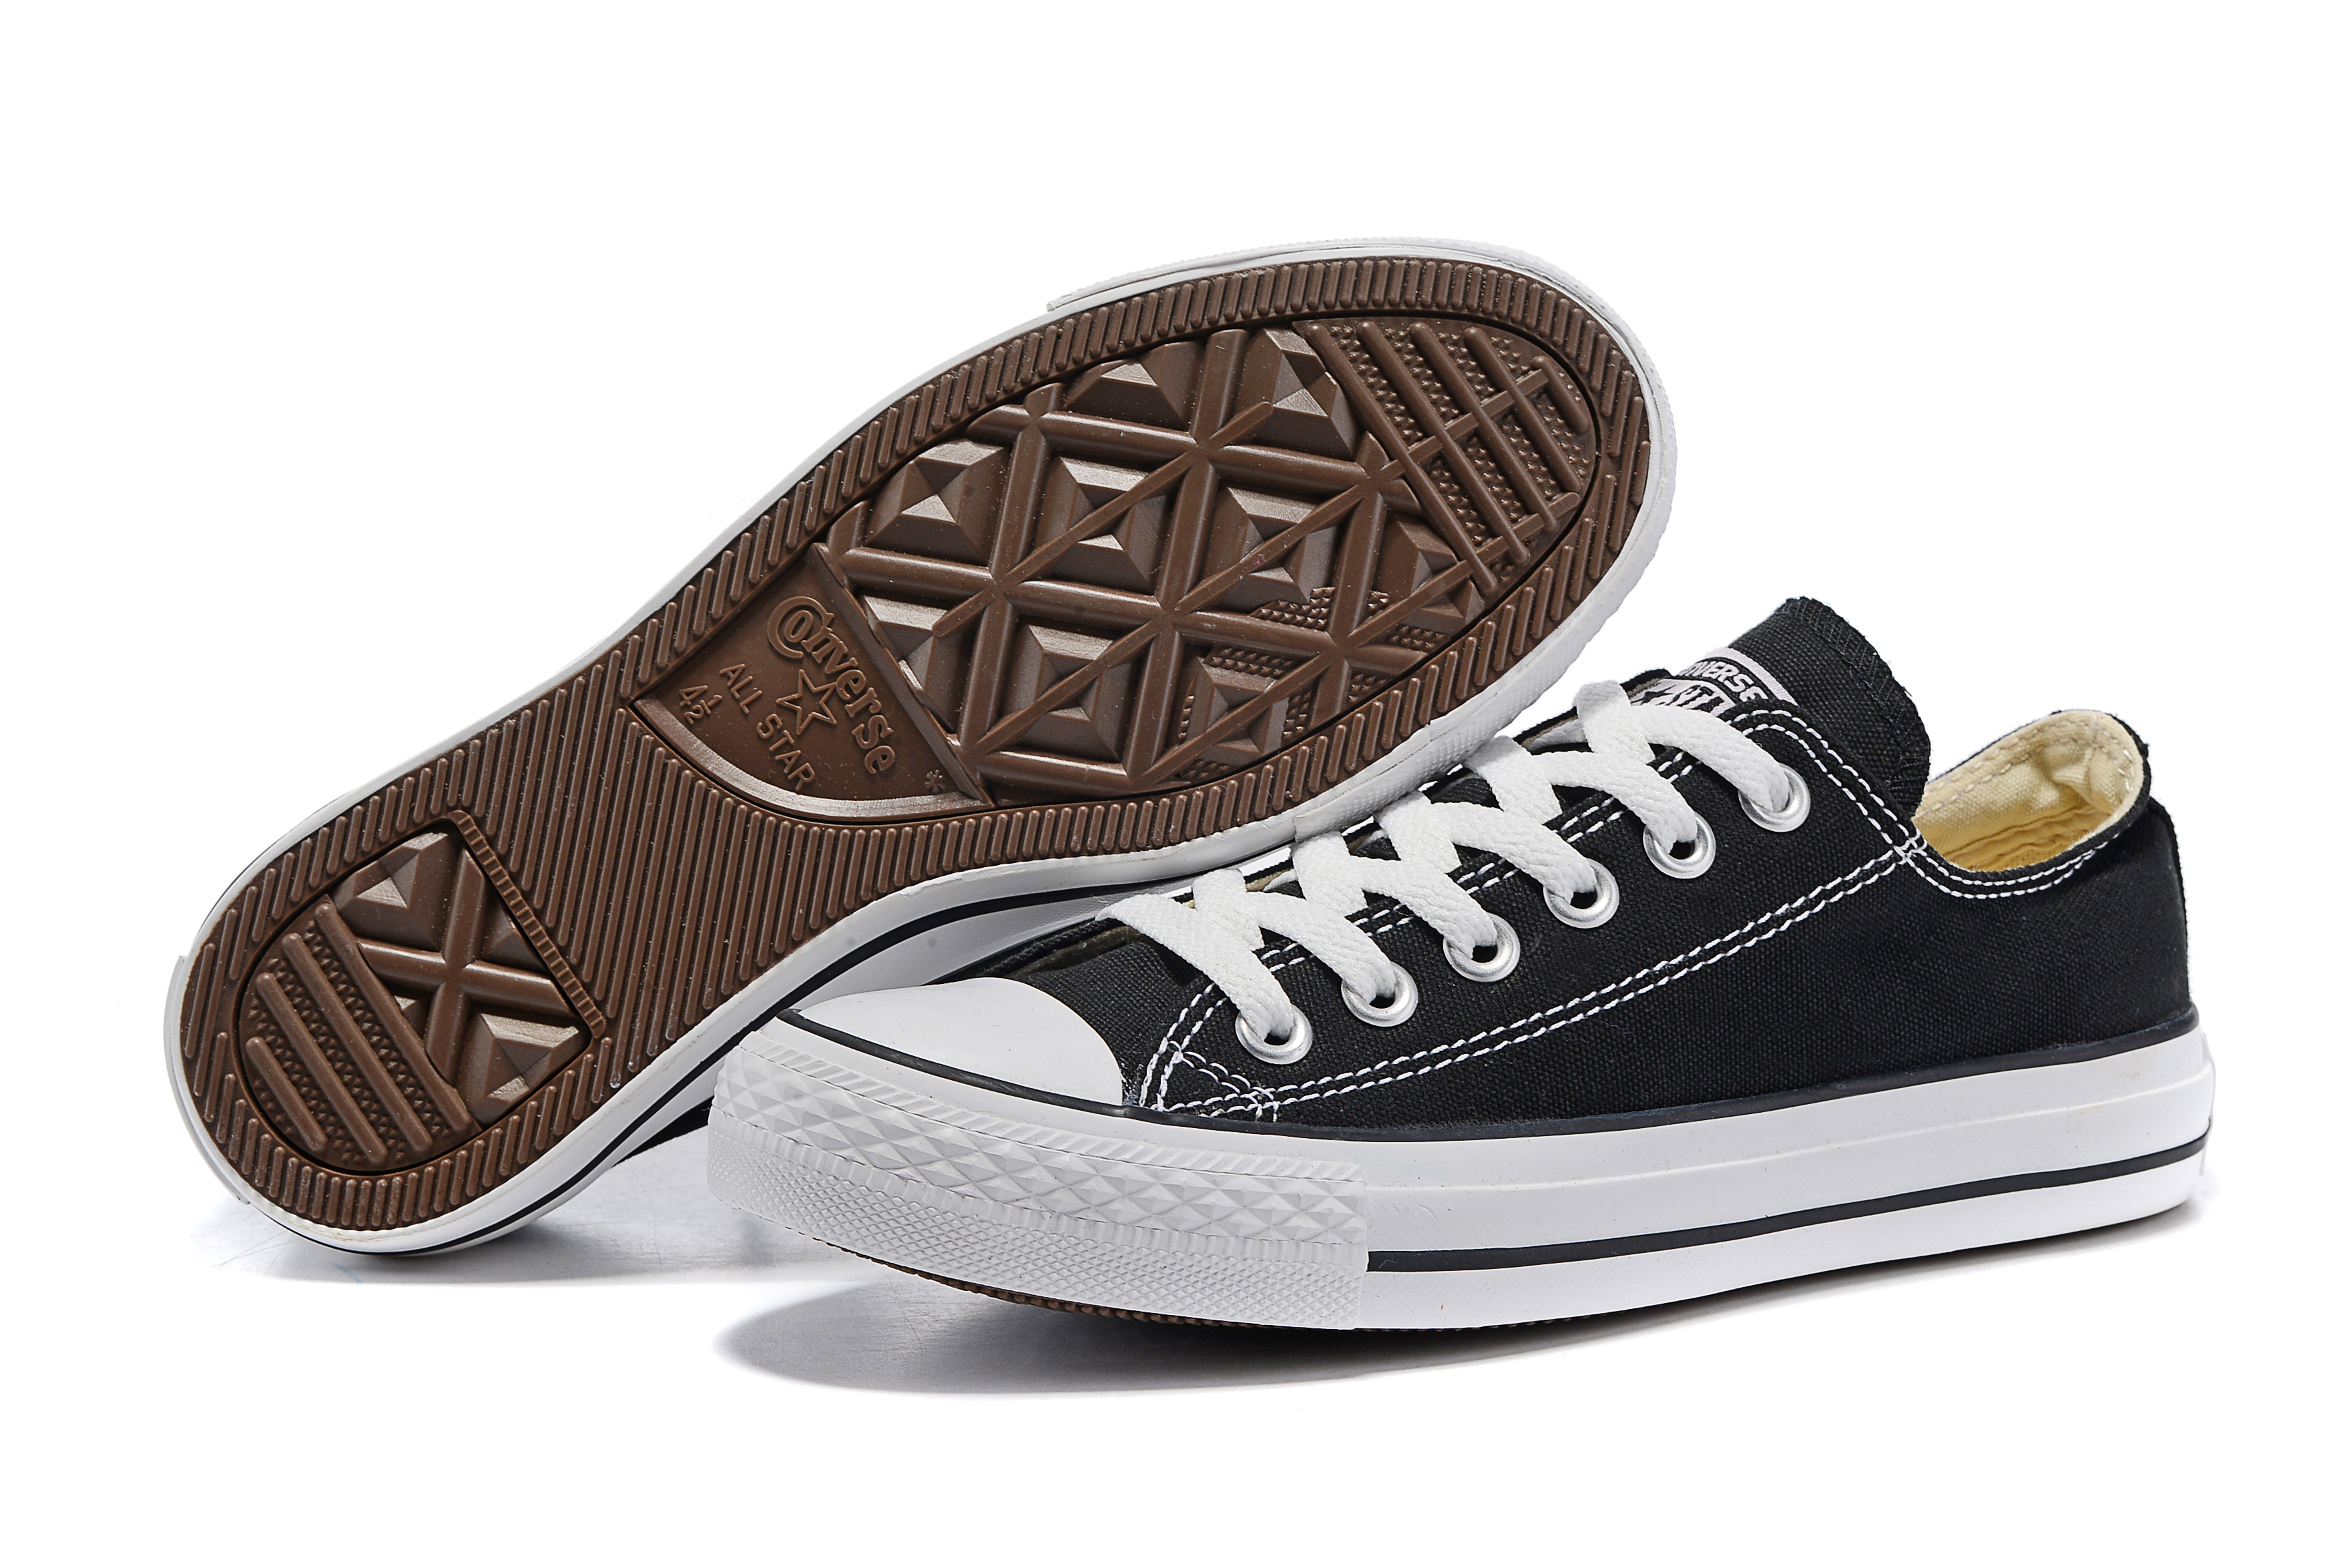 Converse All Star Classic Canvas Shoes Men's And Women's Sneakers Low Skateboarding Shoes